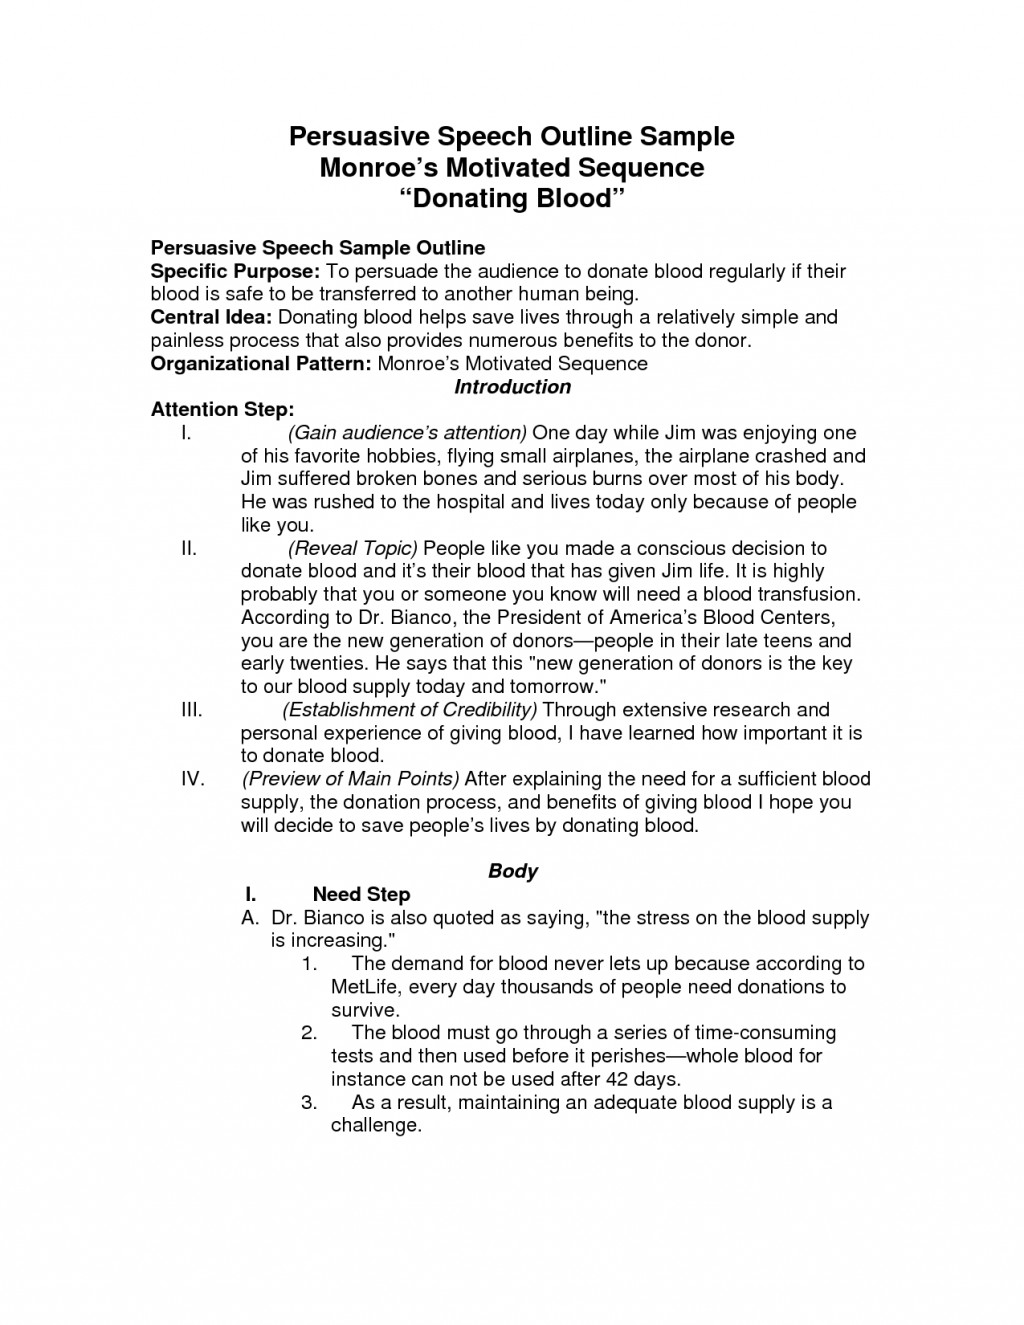 009 Persuasive Essay Speech Outline Template 3tgrxdkt Formidable A Example Of On Gun Control Large